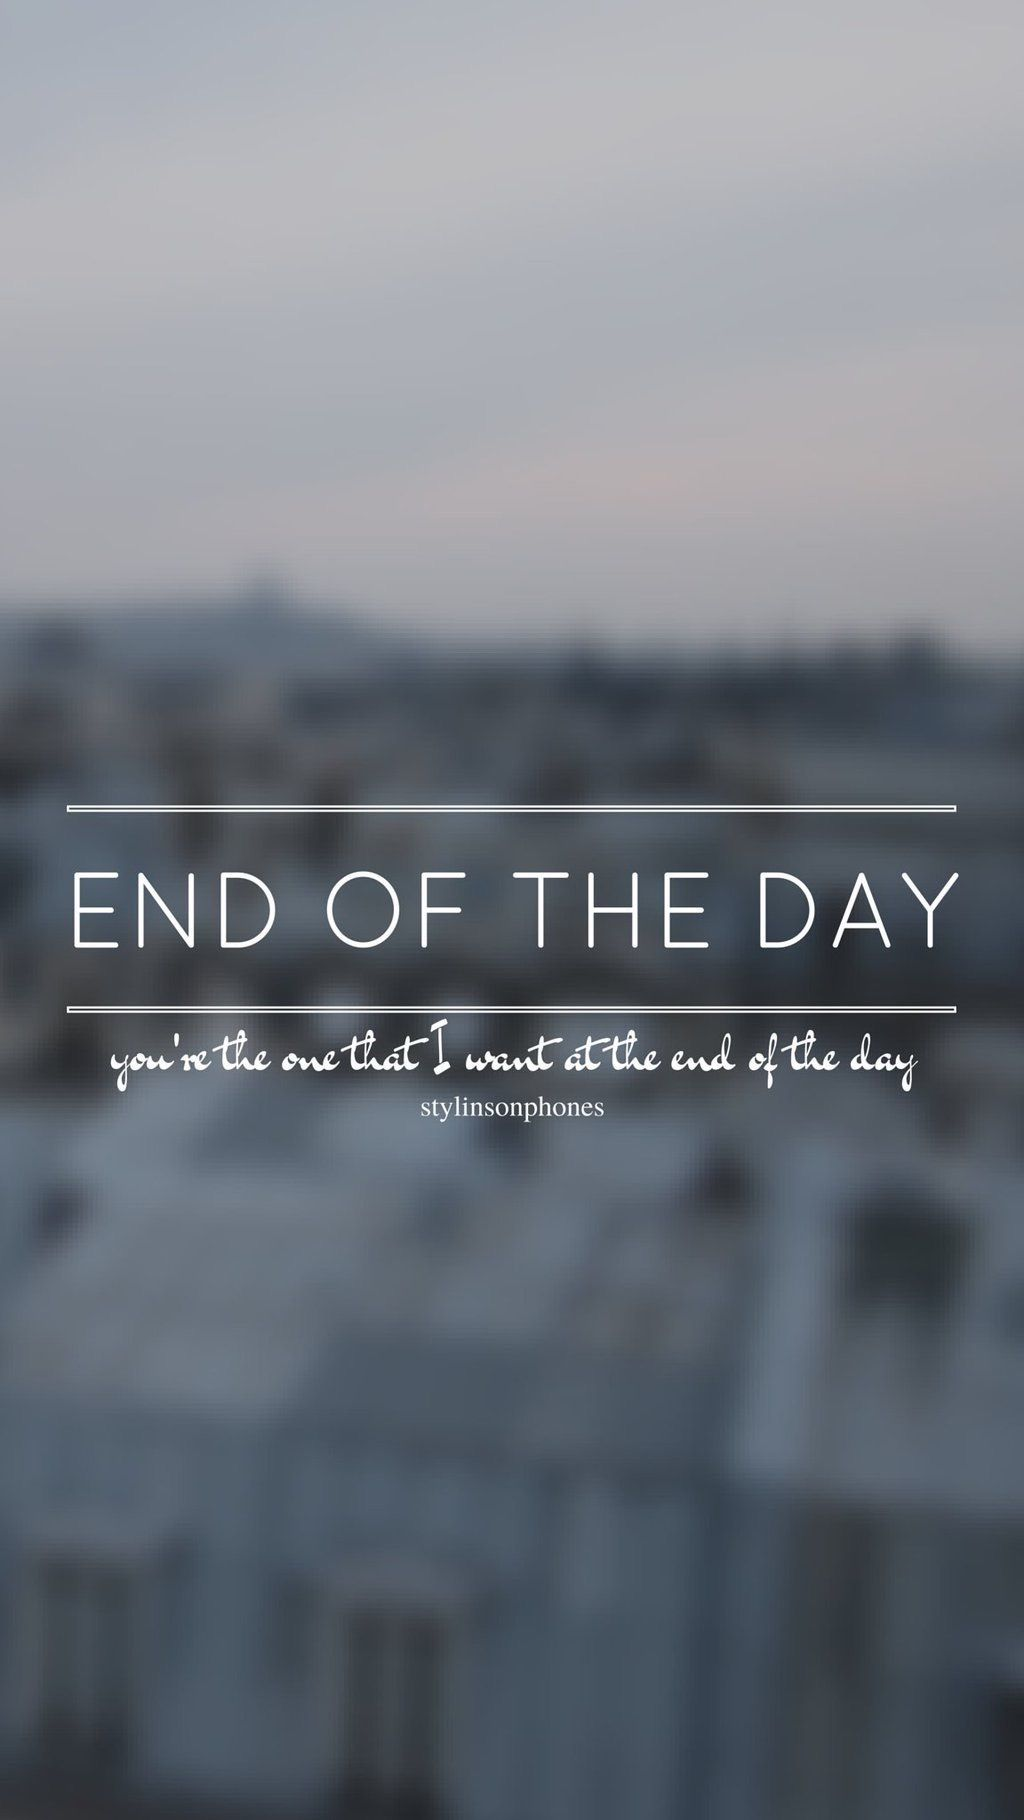 End Of The Day HD Desktop Wallpaper for K Ultra HD TV Dual